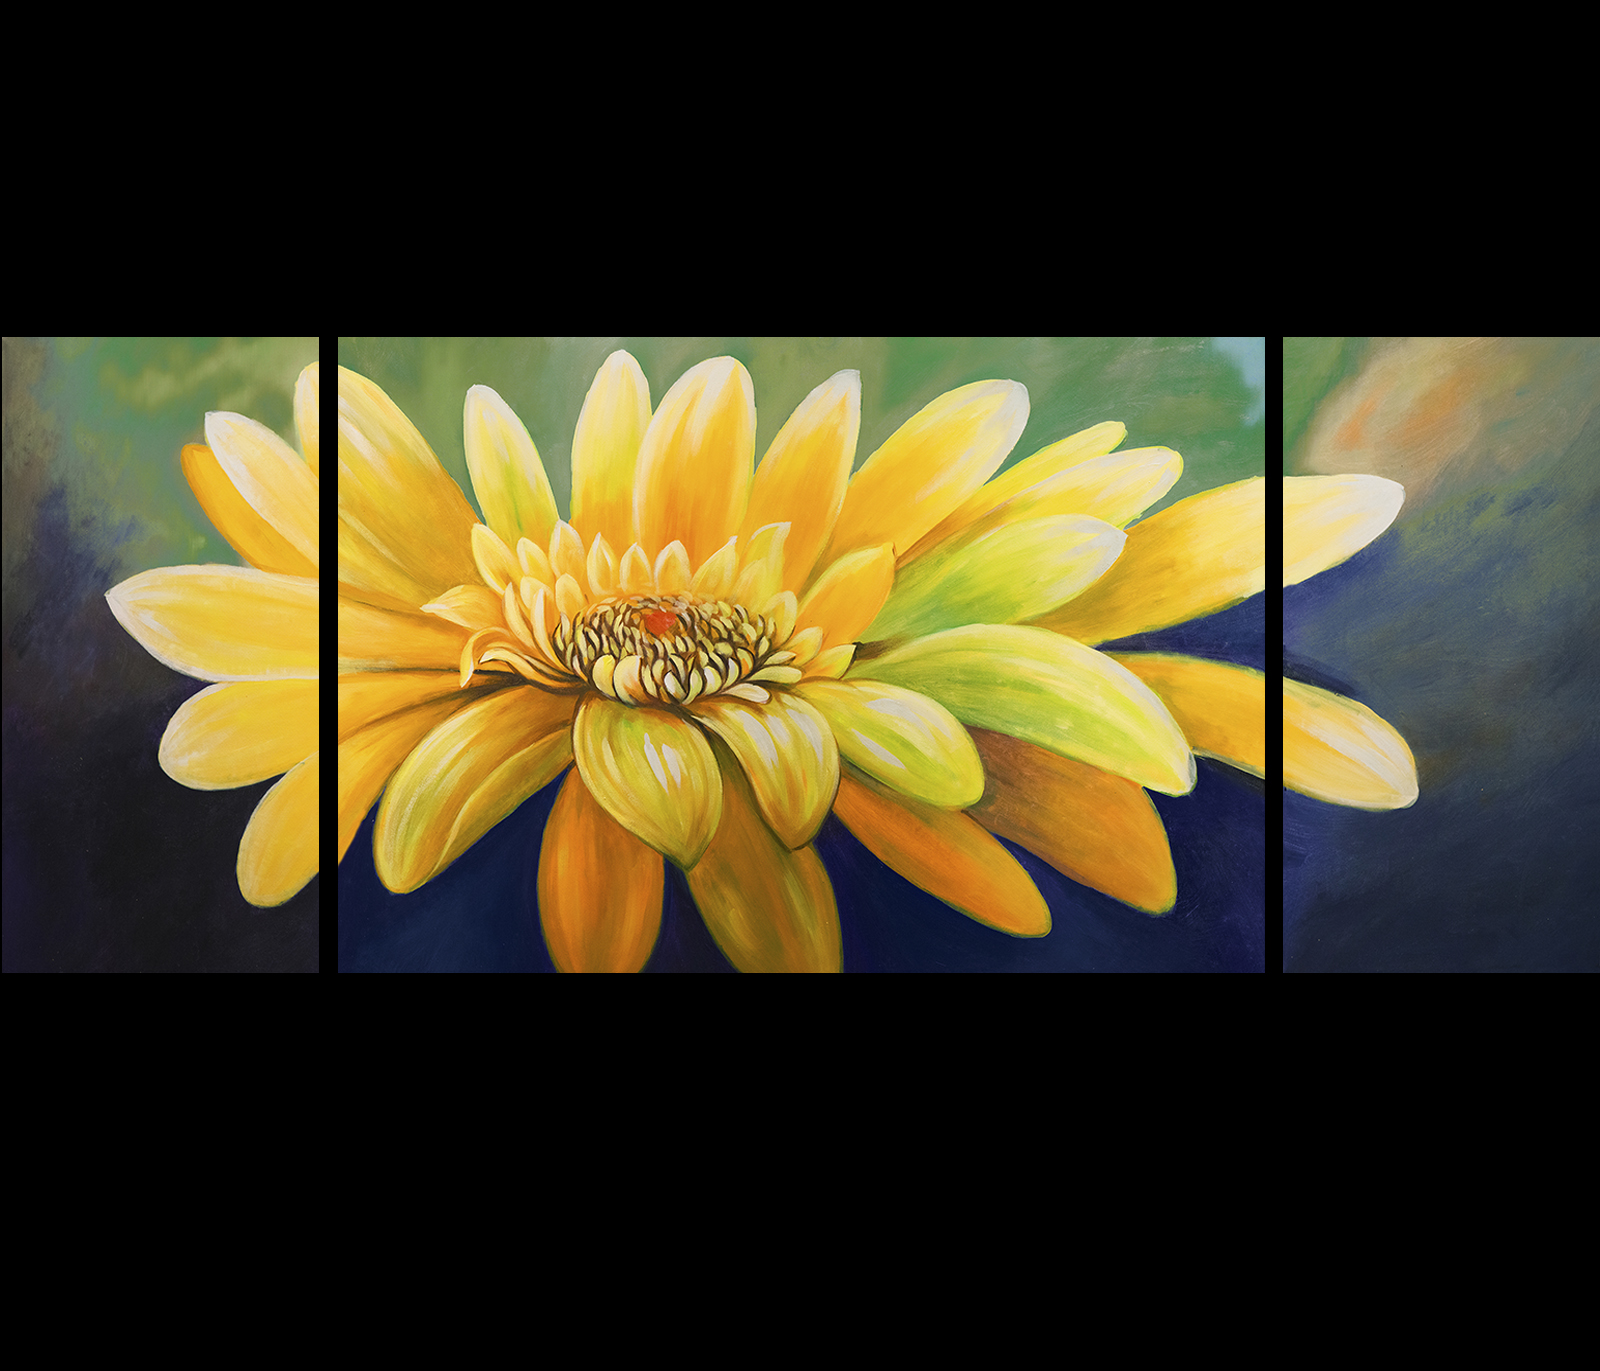 Abstract Flower Painting Sunflower Painting Modern Wall Art Decor